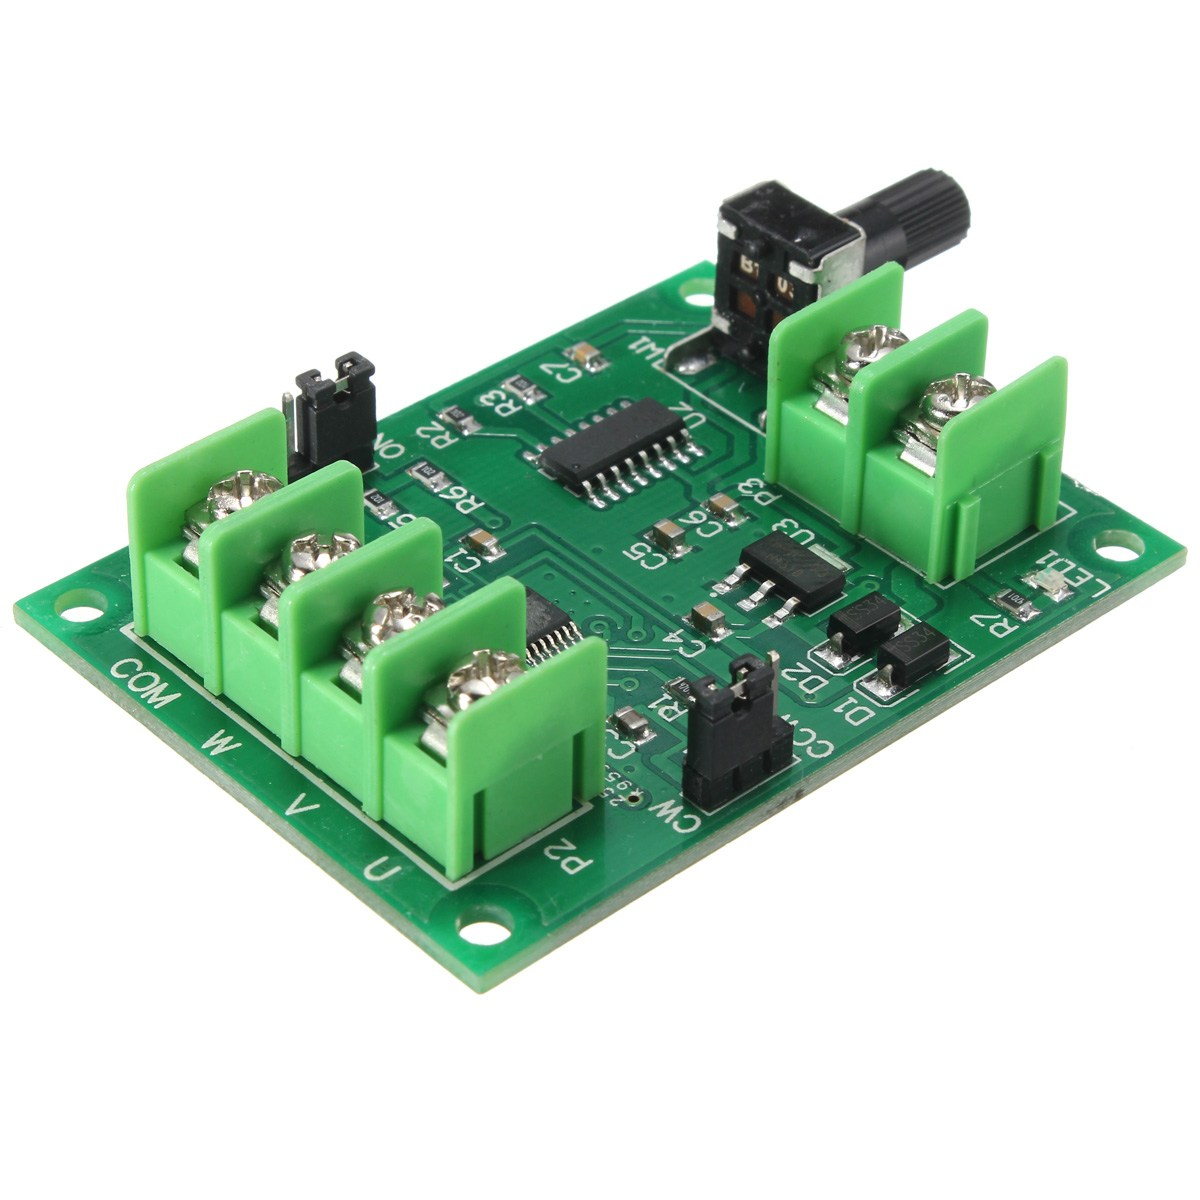 Hot Sale New Arrival 5v 12v Dc Brushless Motor Driver Board Circuit Controller For Hard Drive 3 4 Wire